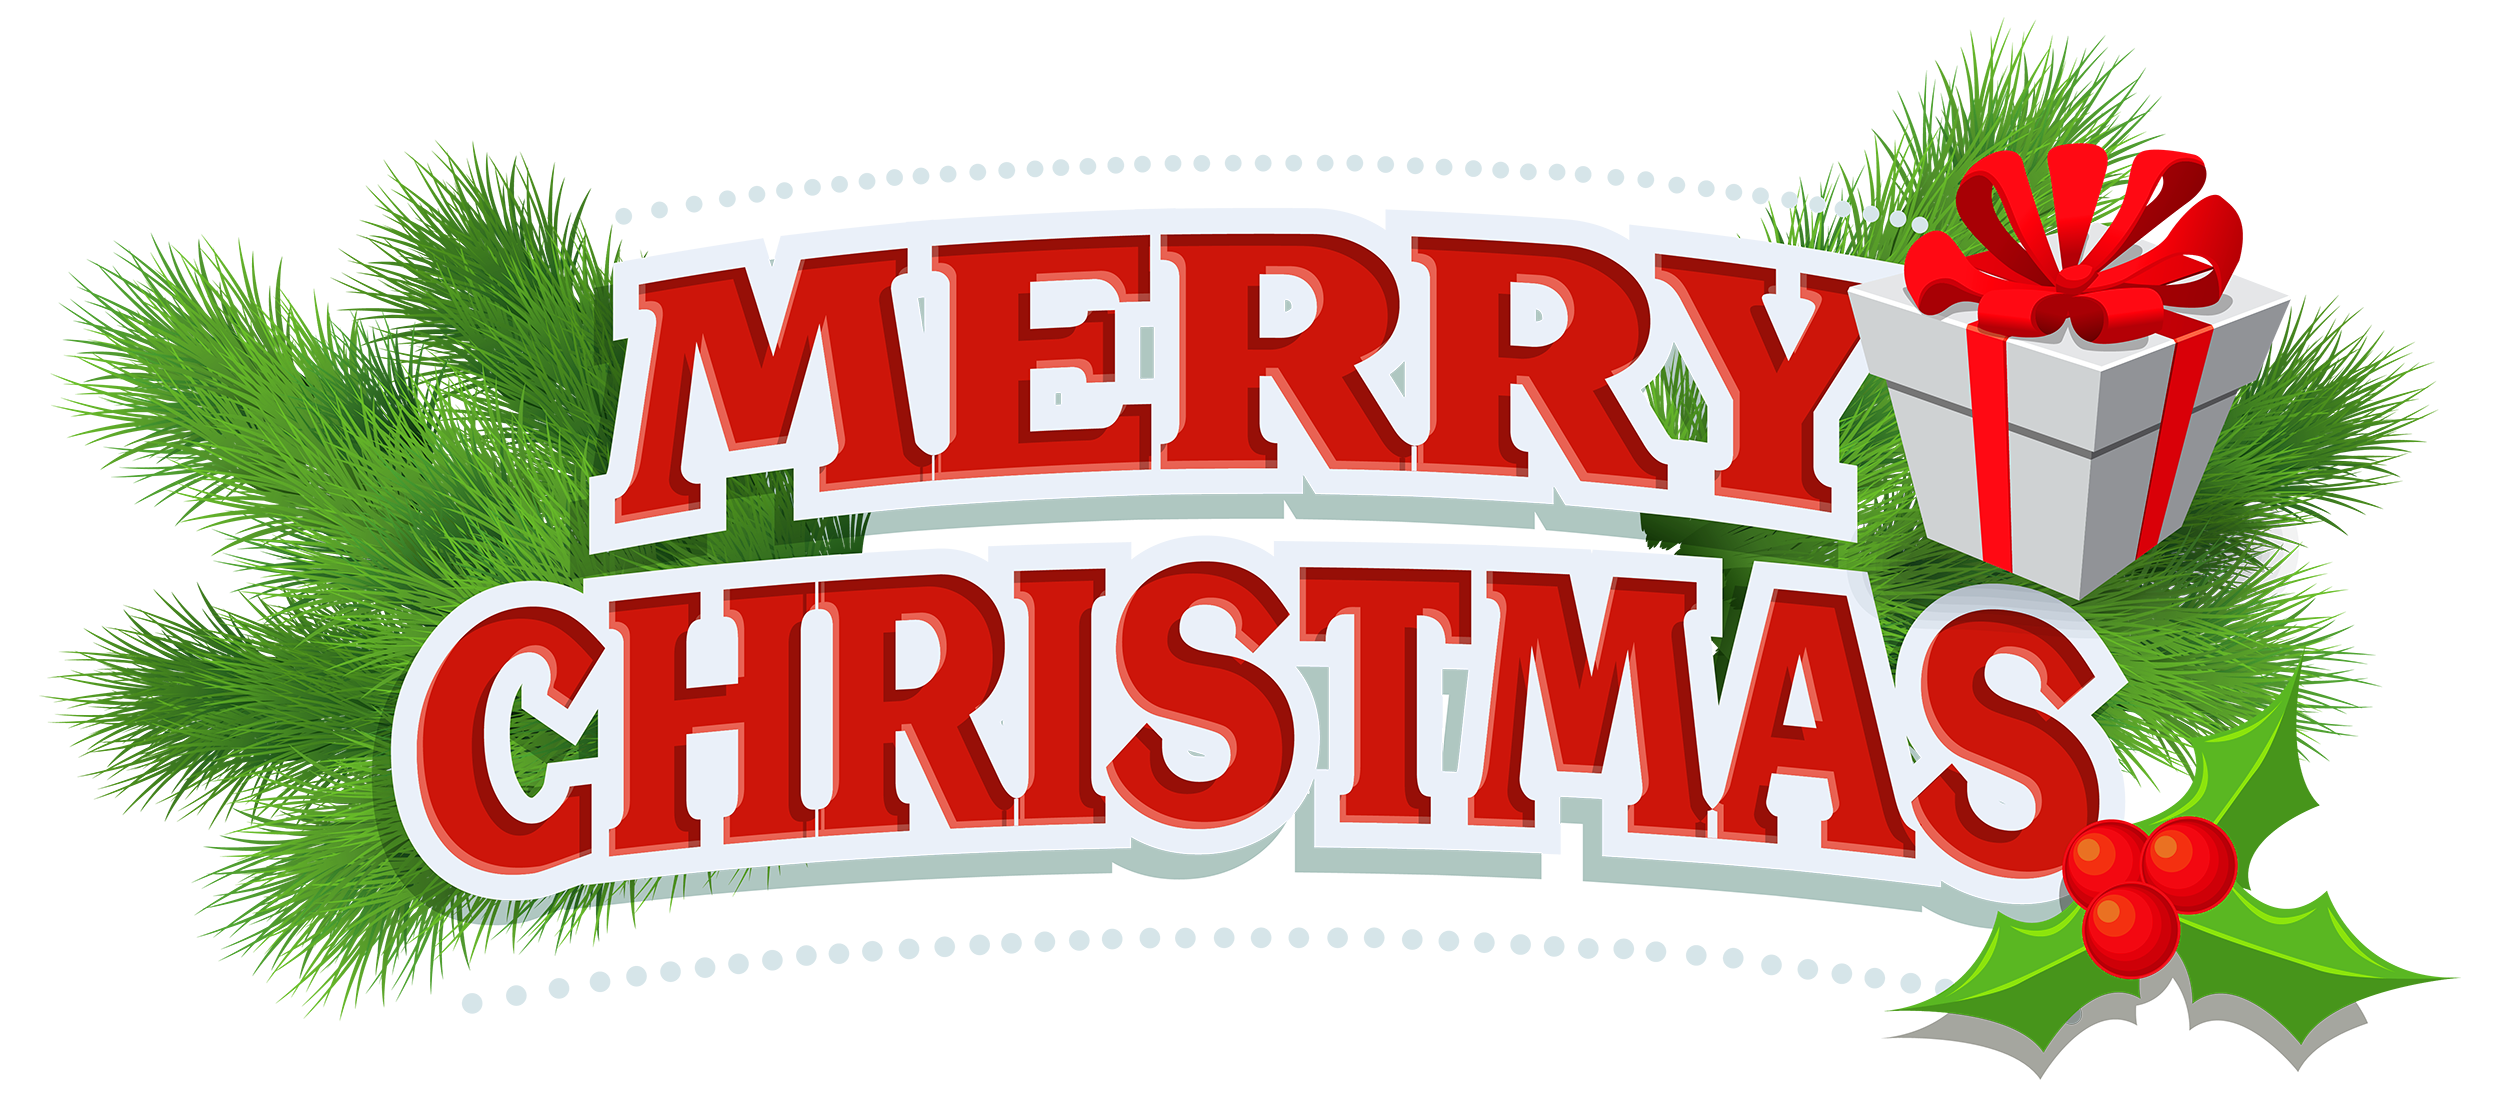 Merry christmas png. Decor with gift clipart